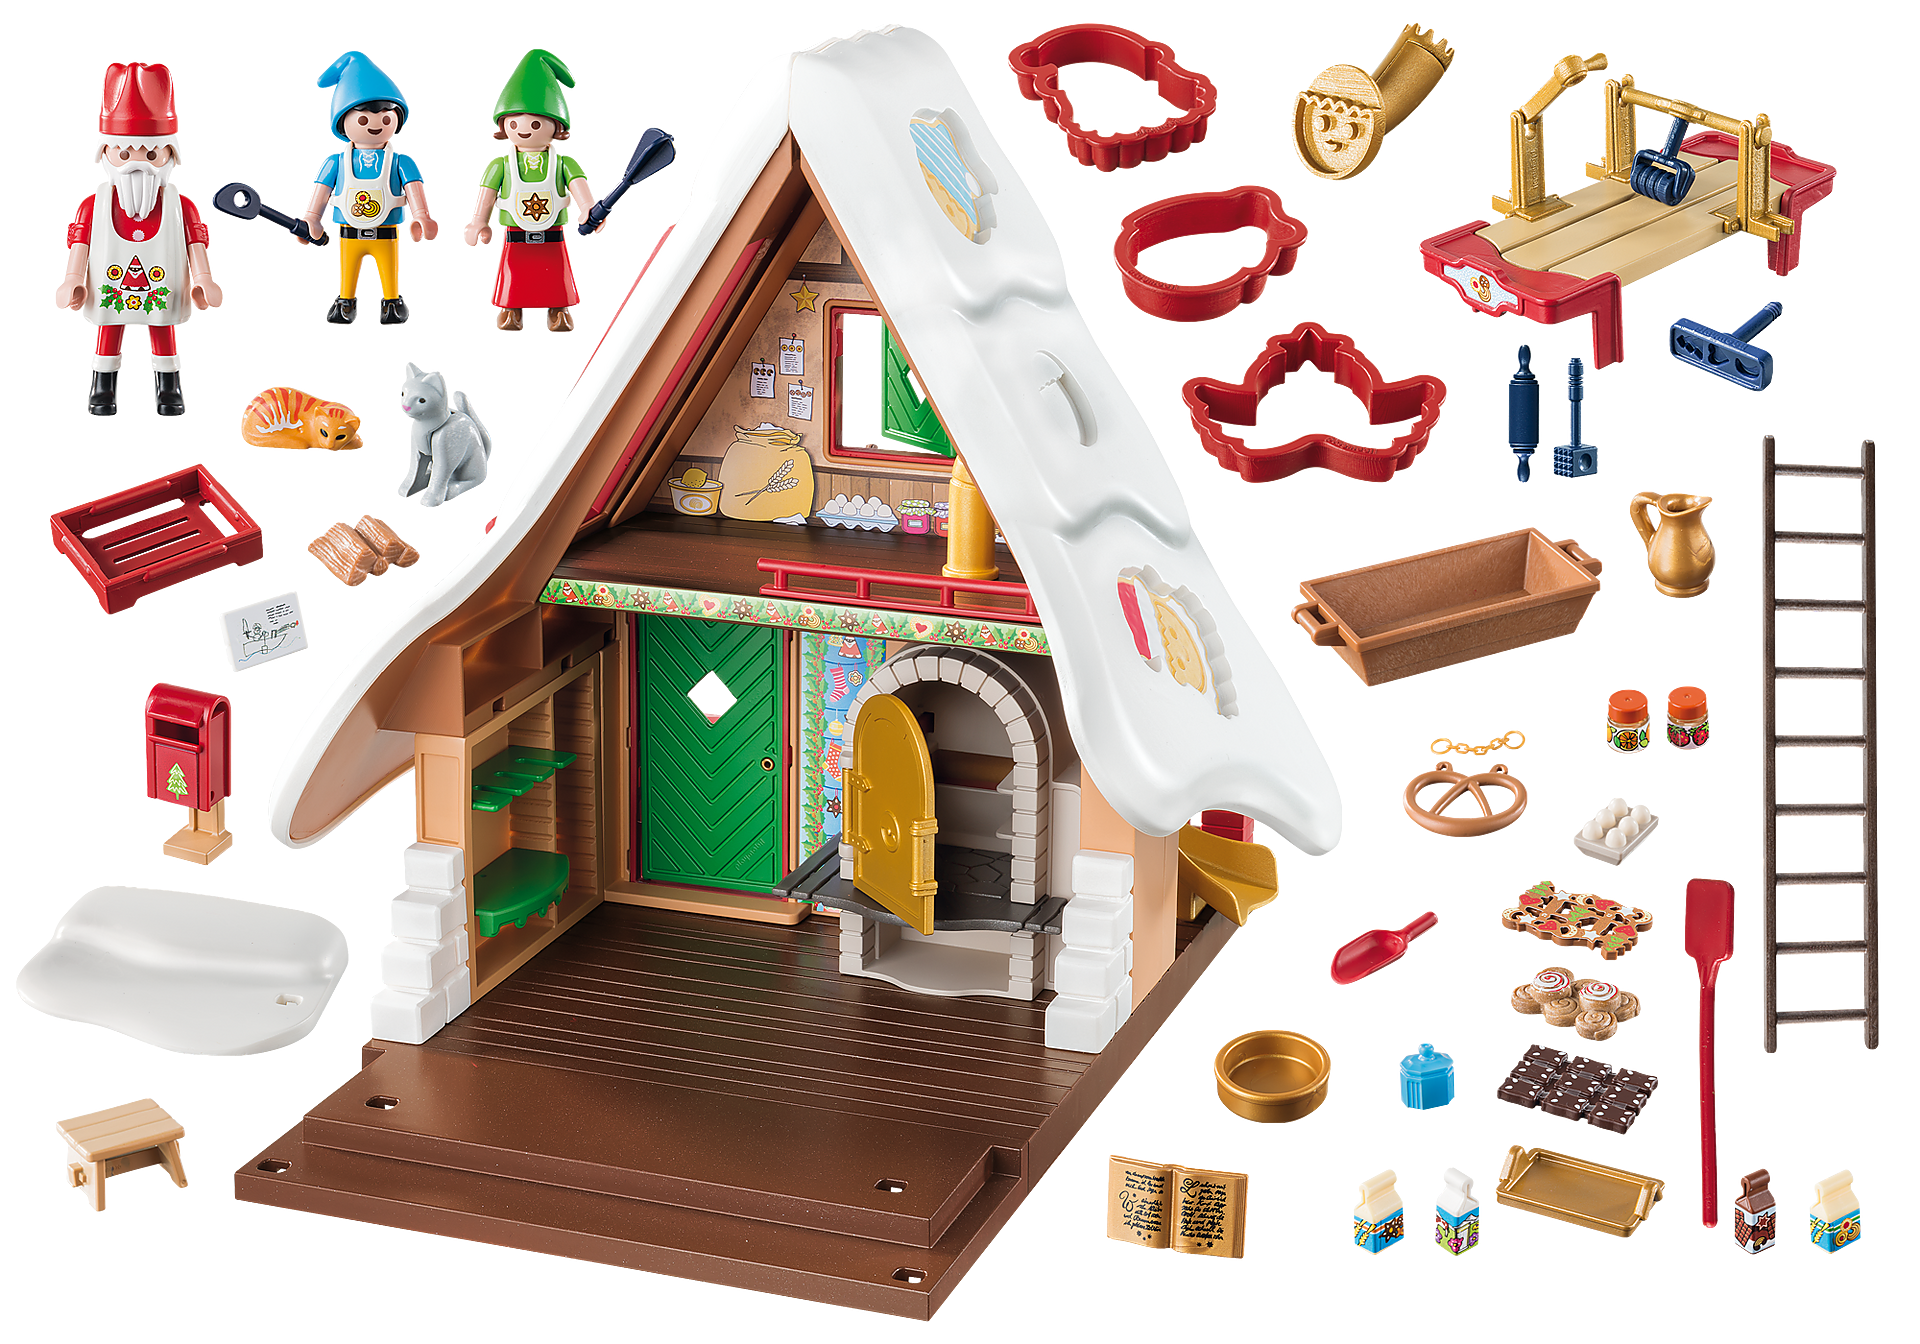 http://media.playmobil.com/i/playmobil/9493_product_box_back/Julbak med kakknivar